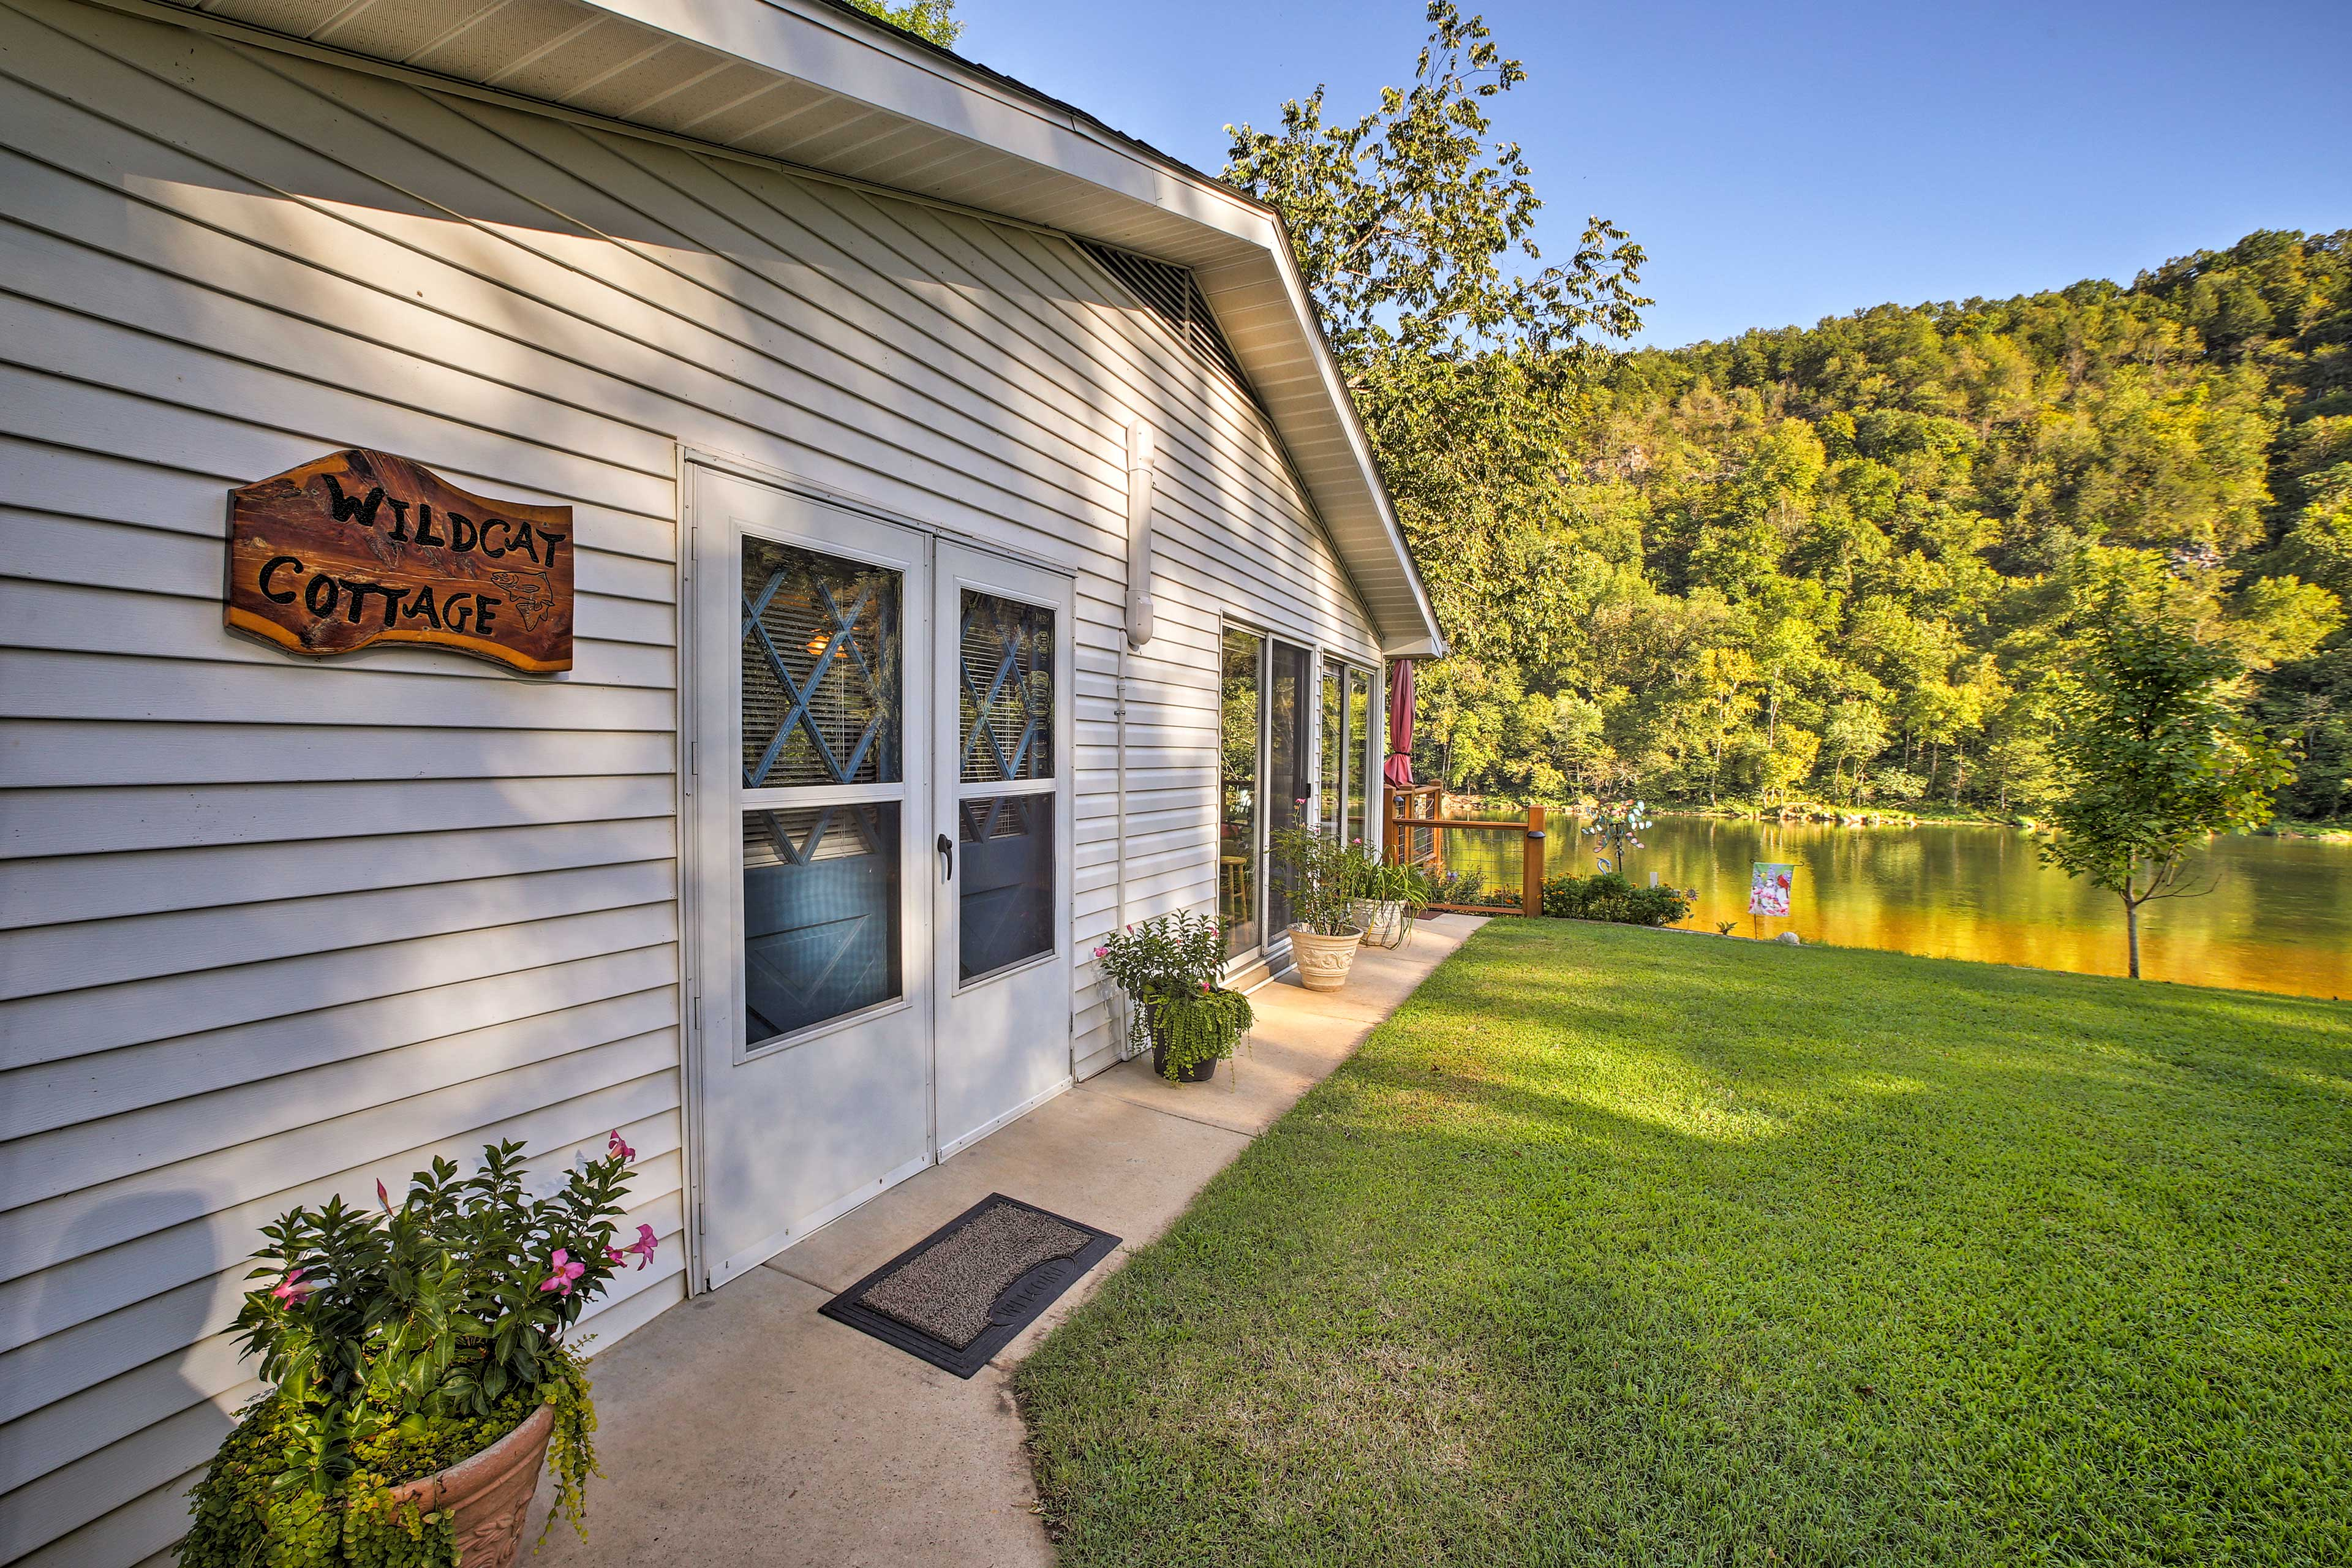 Make 'Wildcat Cottage' your next family holiday destination.